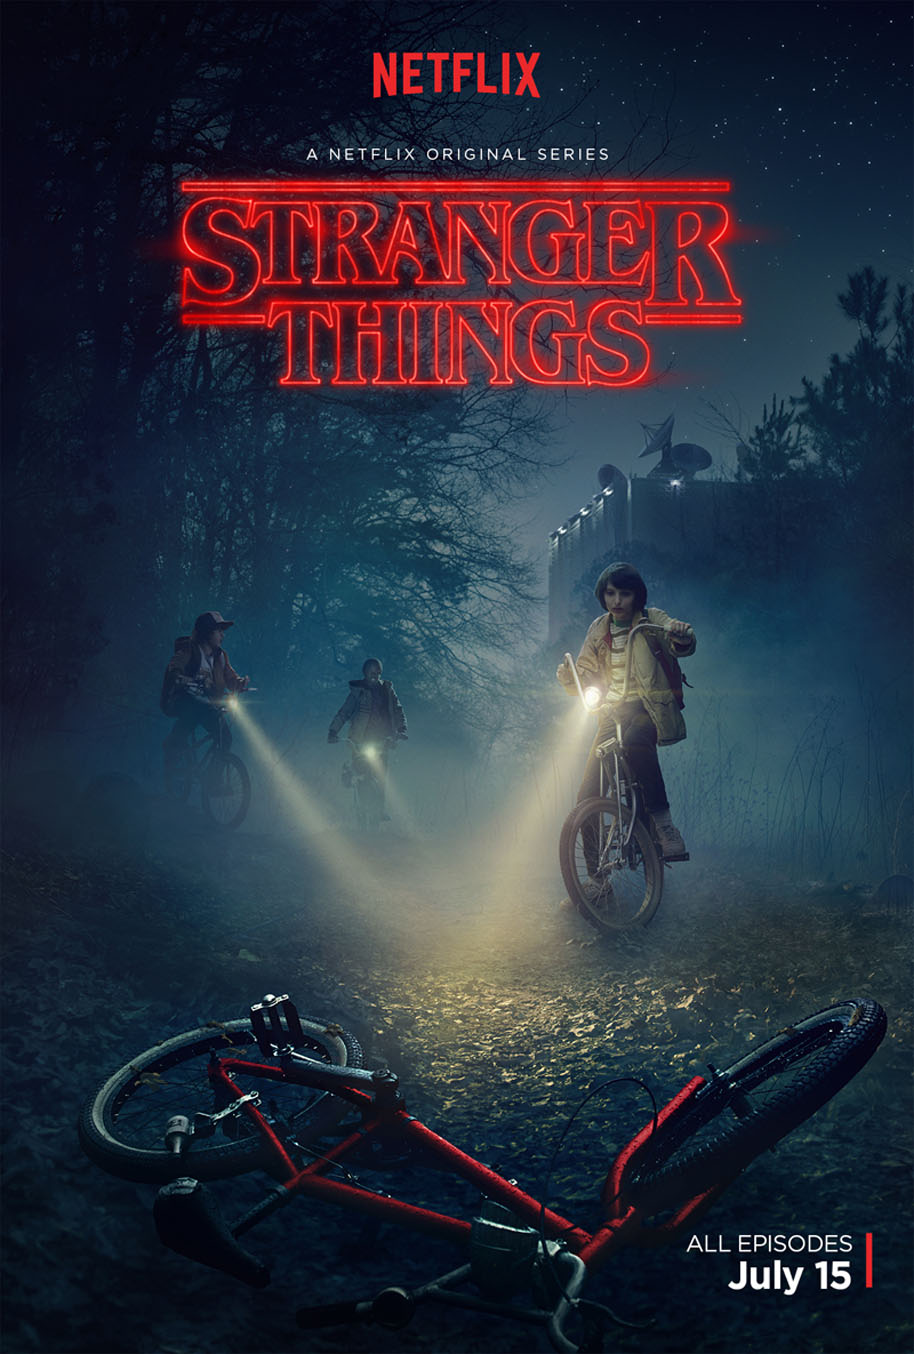 Stranger Things review: More than a glorious nostalgia trip?